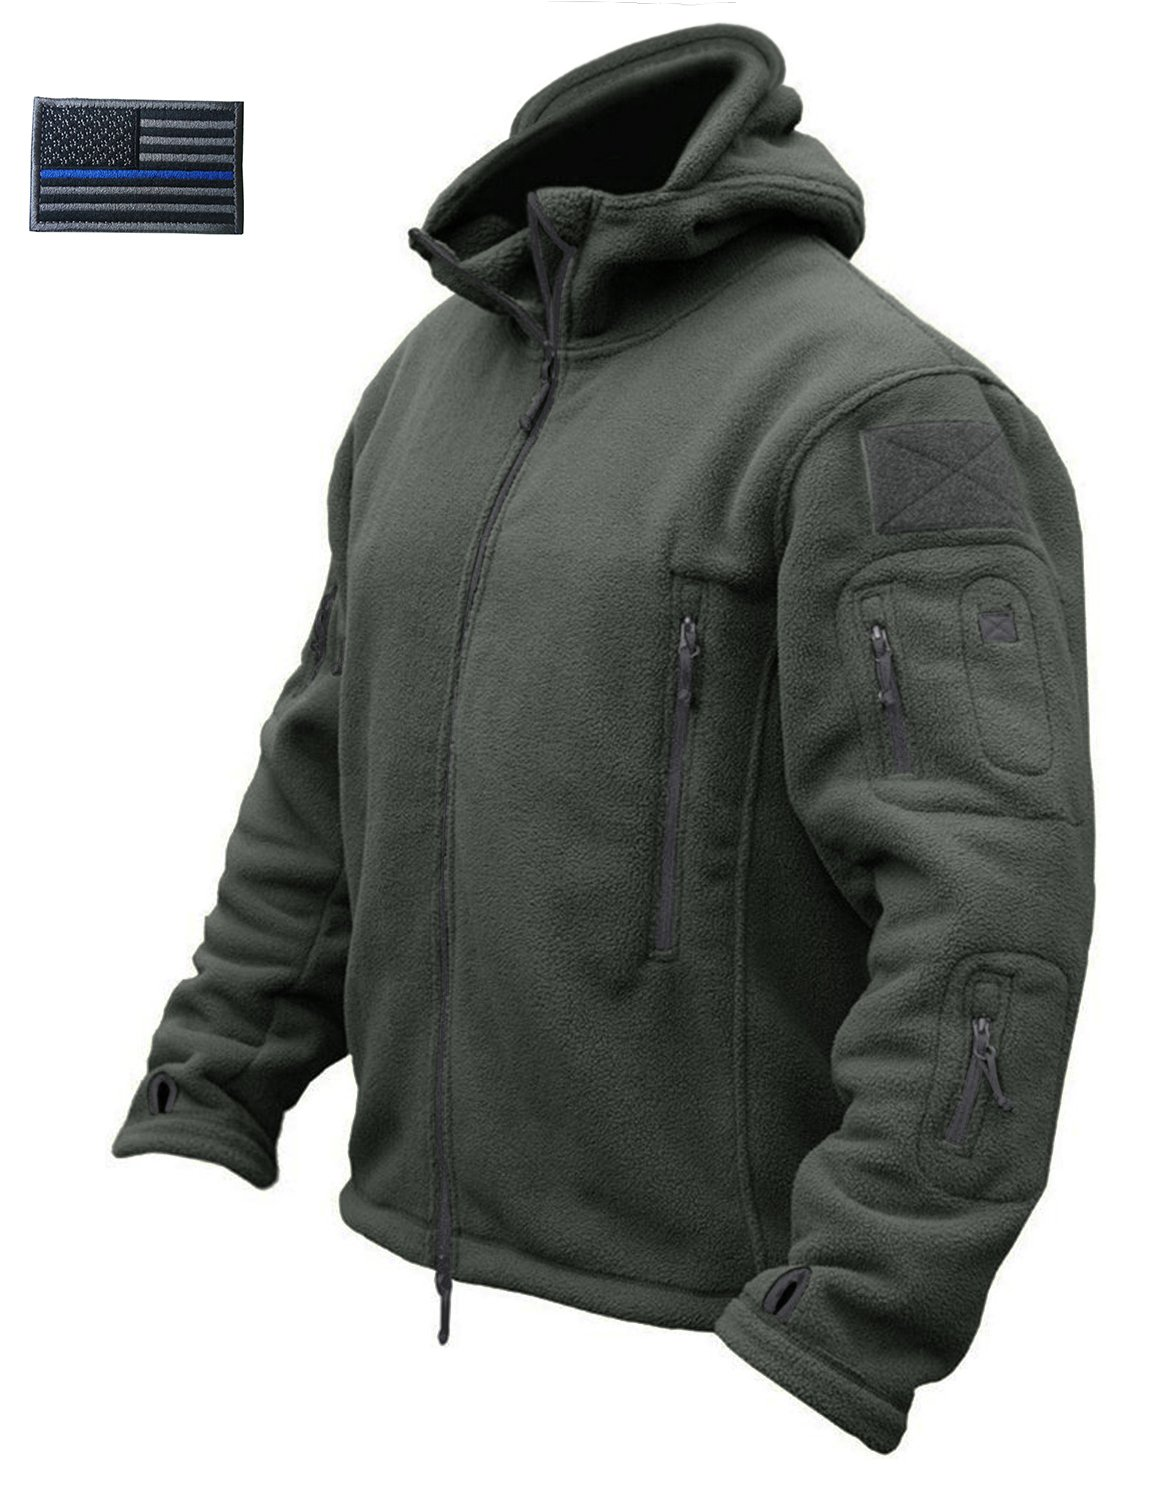 CRYSULLY Men's Autumn Winter Military Tactical